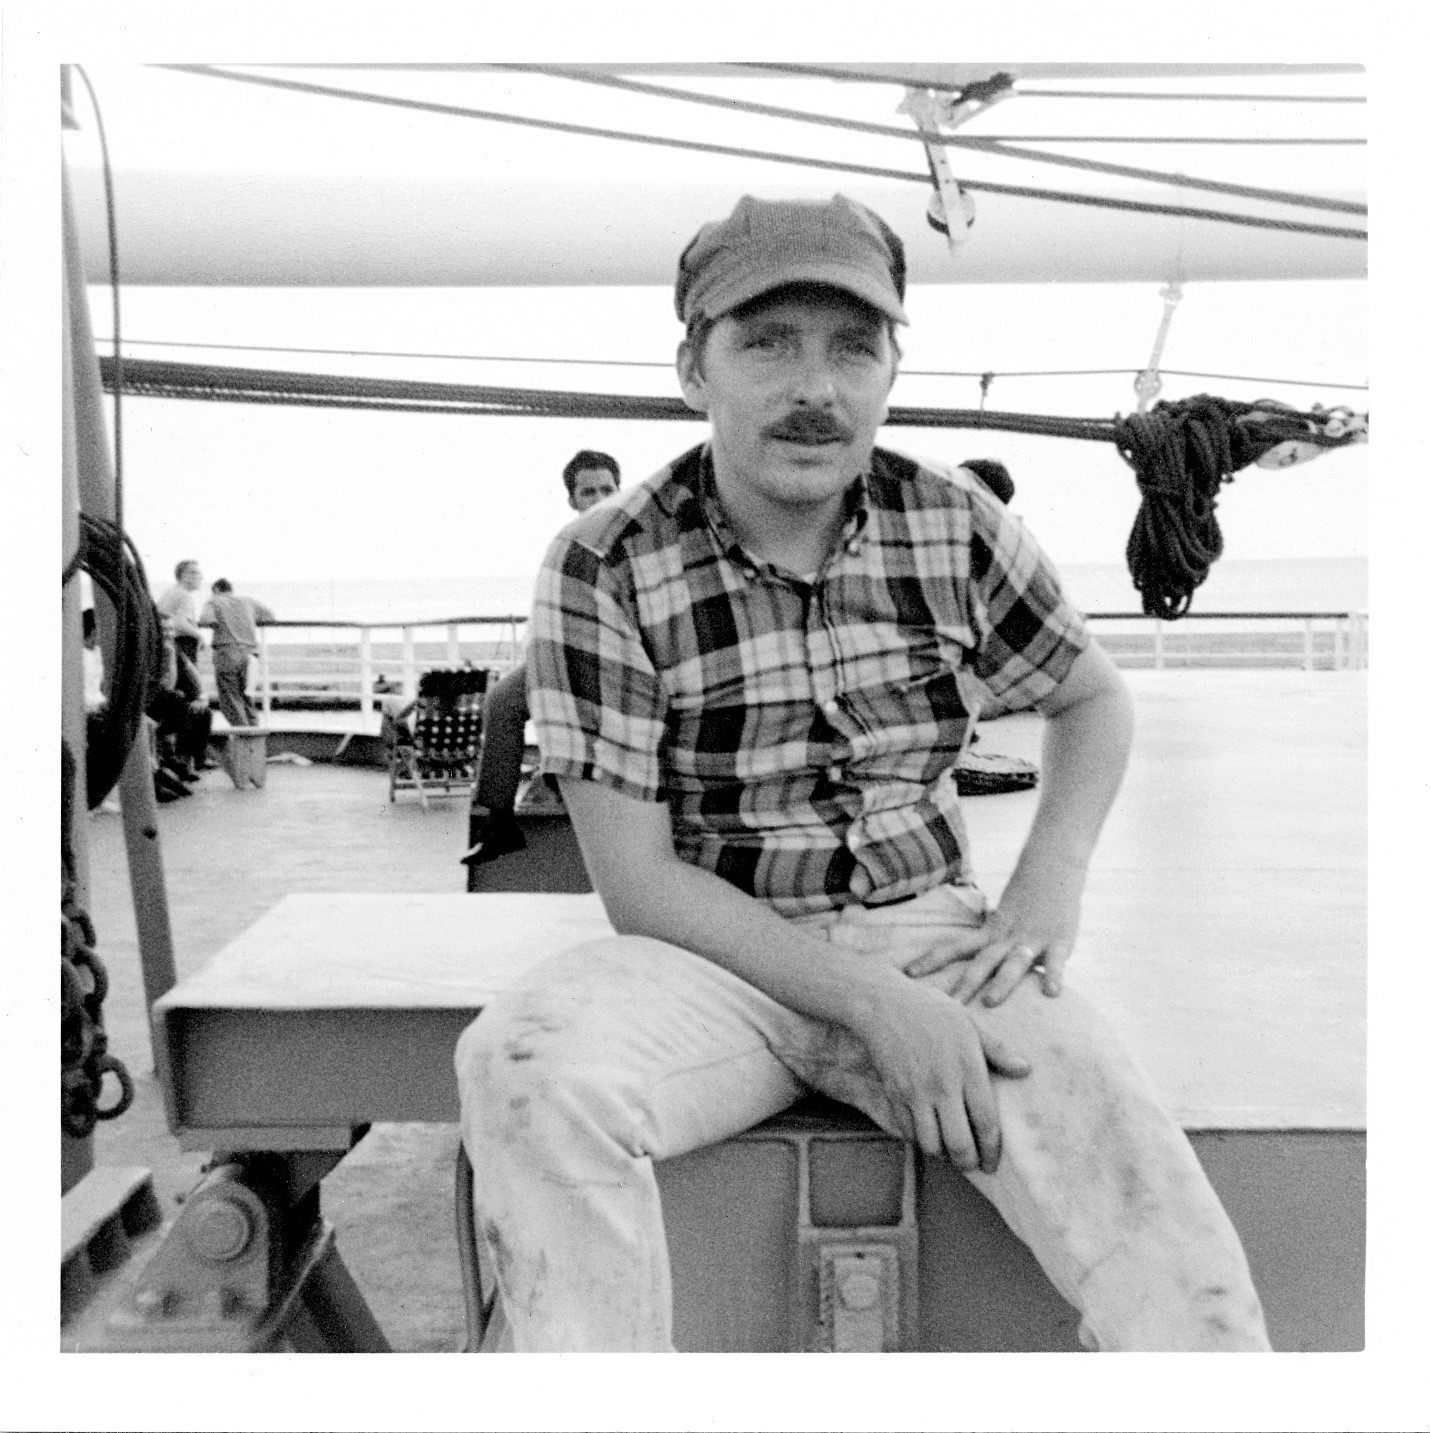 Chick Donohue on boat